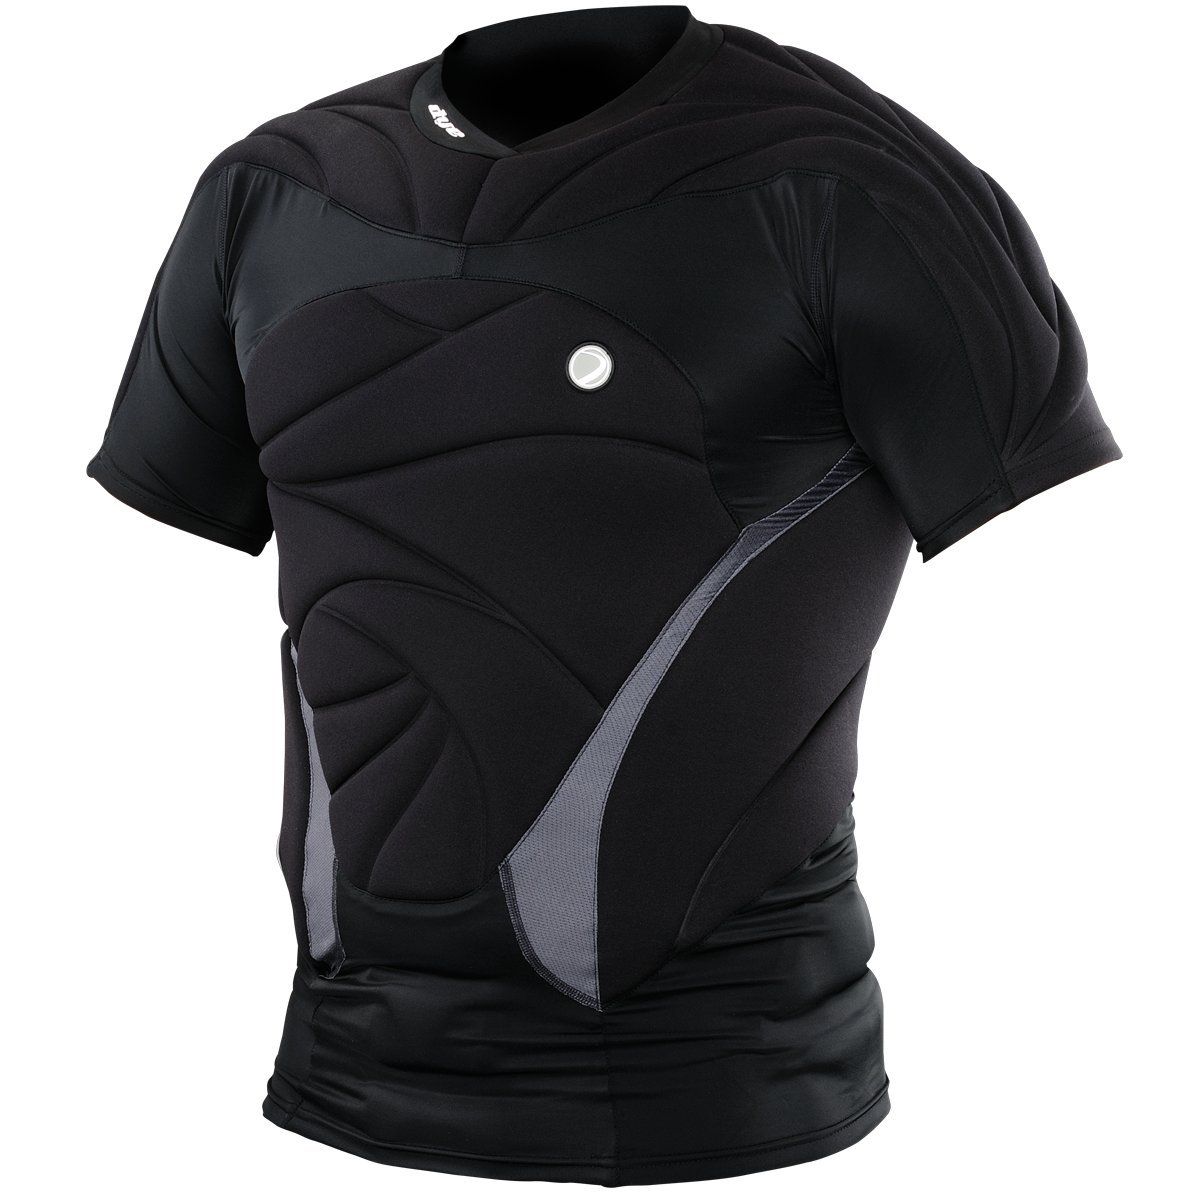 Dye Precision Performance Padded Paintball Top, Large/X-Large by Dye